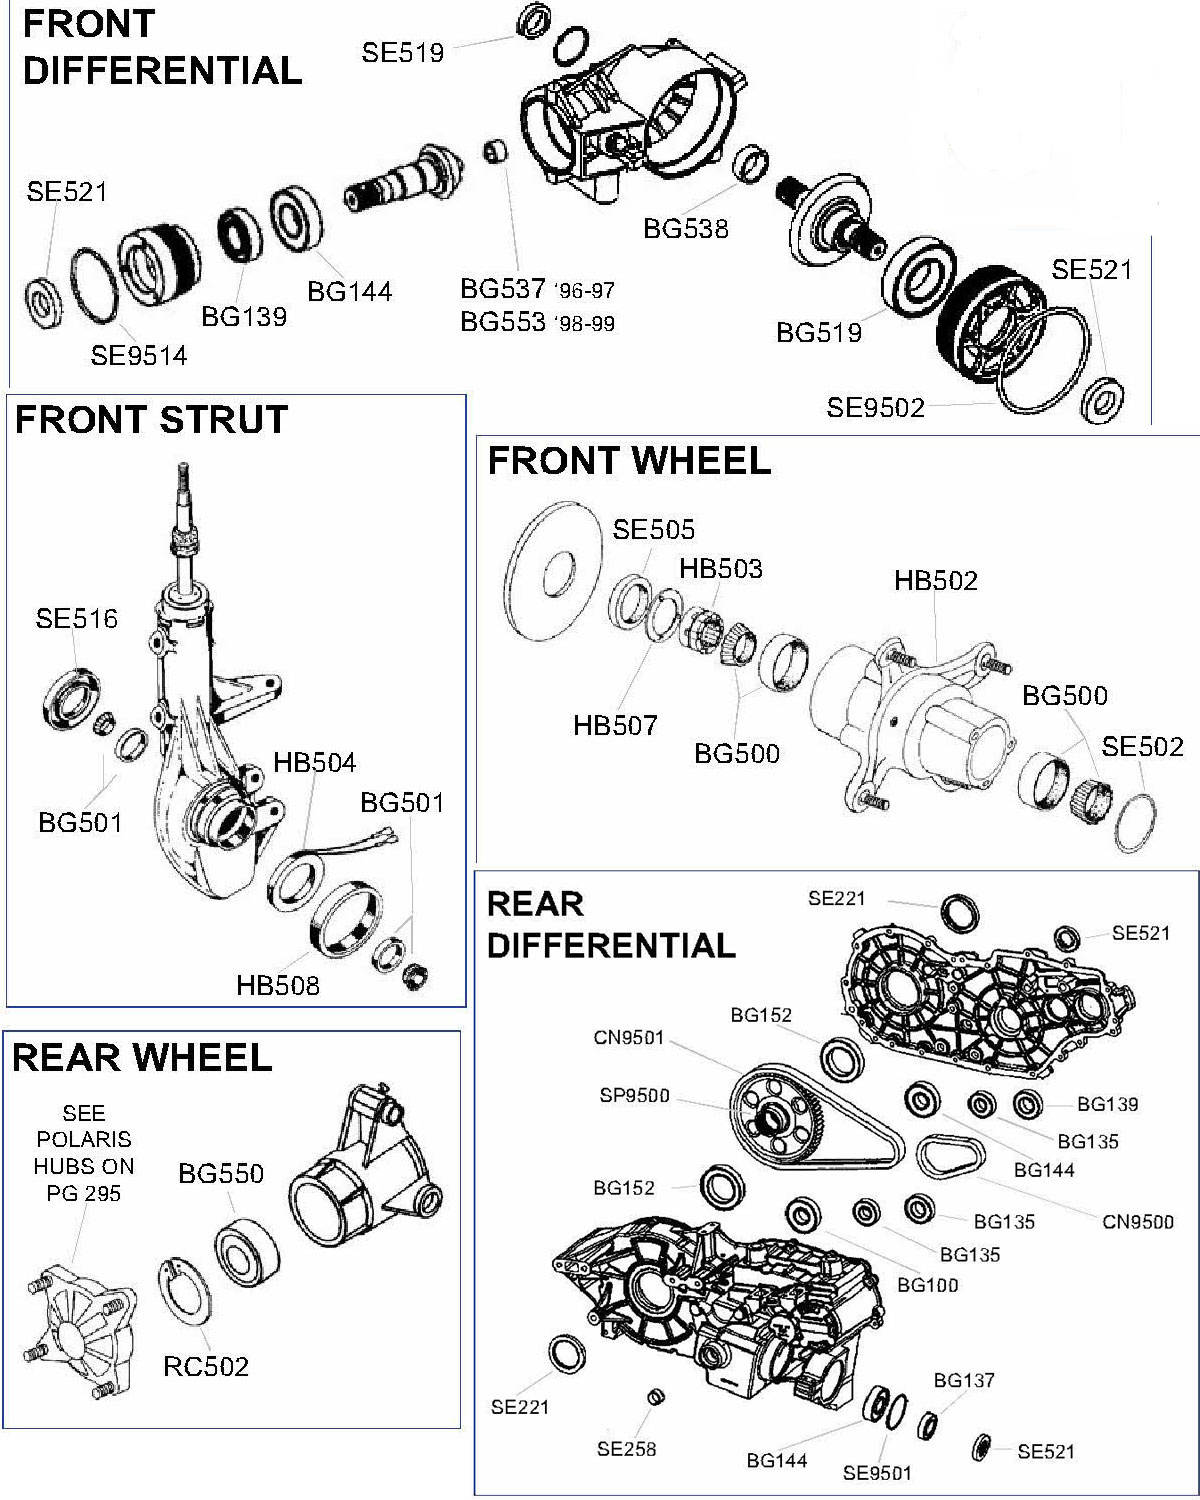 [DIAGRAM] 02 Polaris Scrambler 500 Wiring Diagram FULL